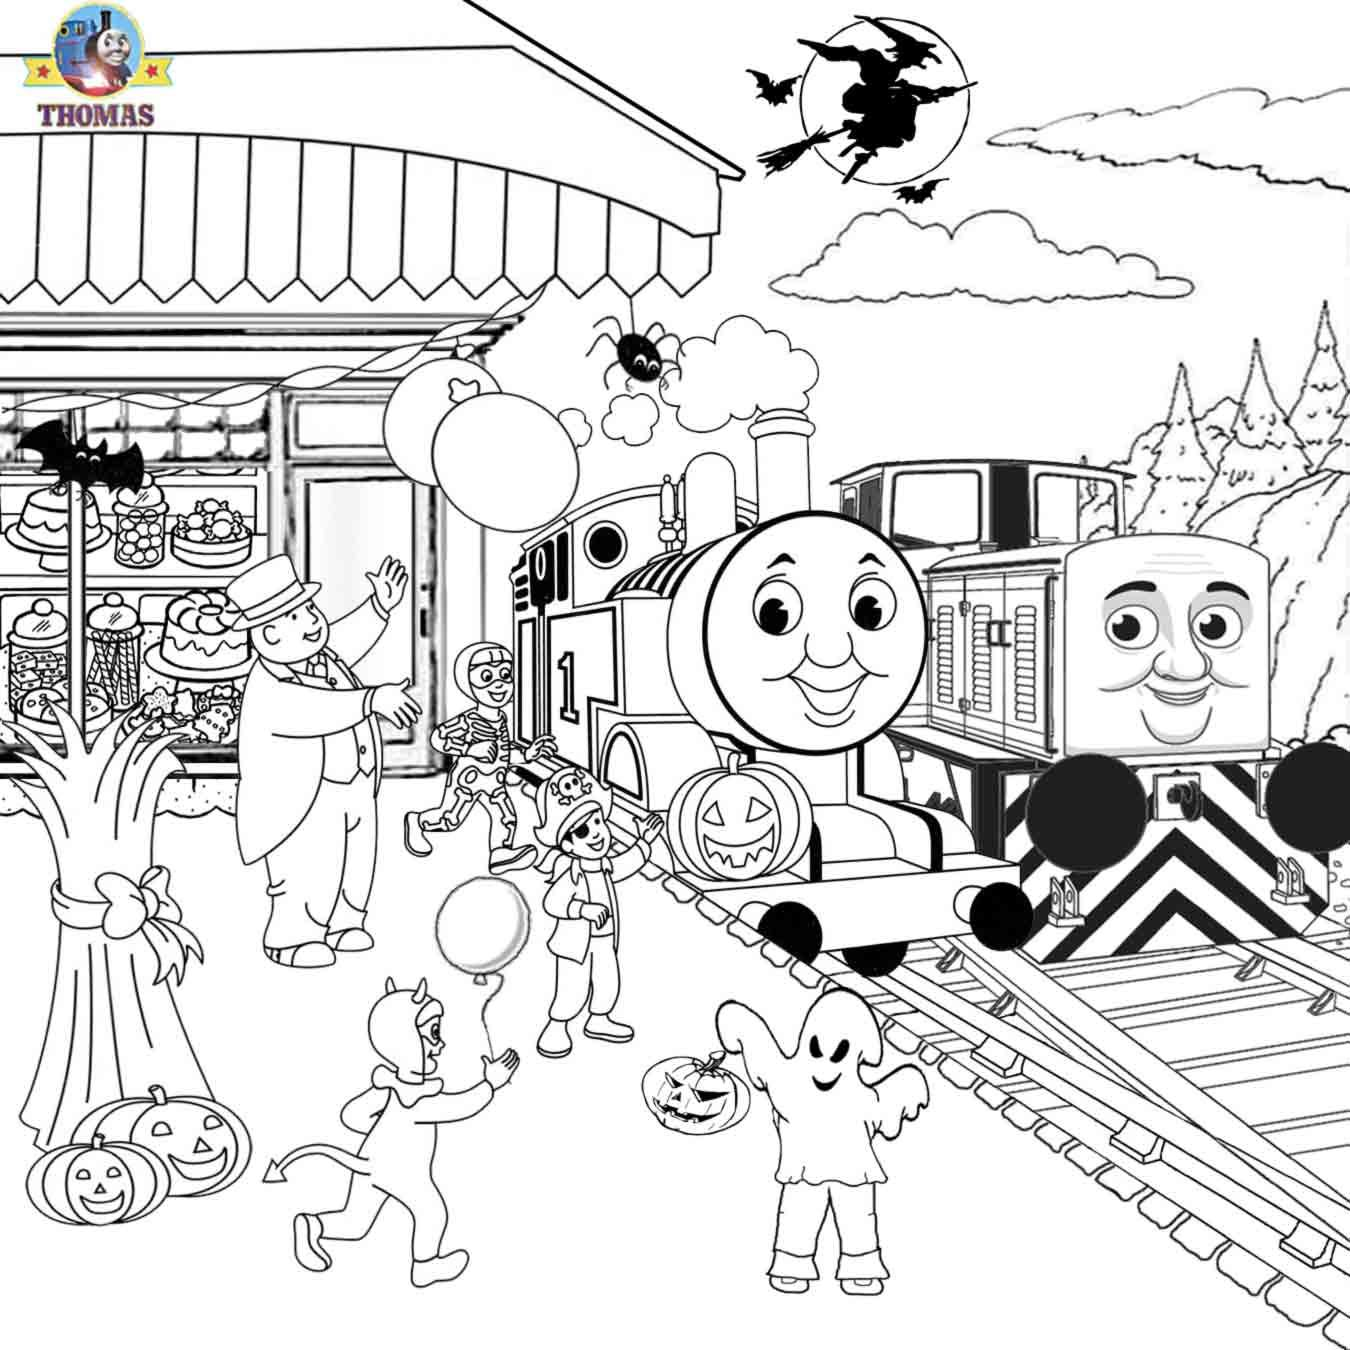 diesel den thomas the train coloring pages free printables